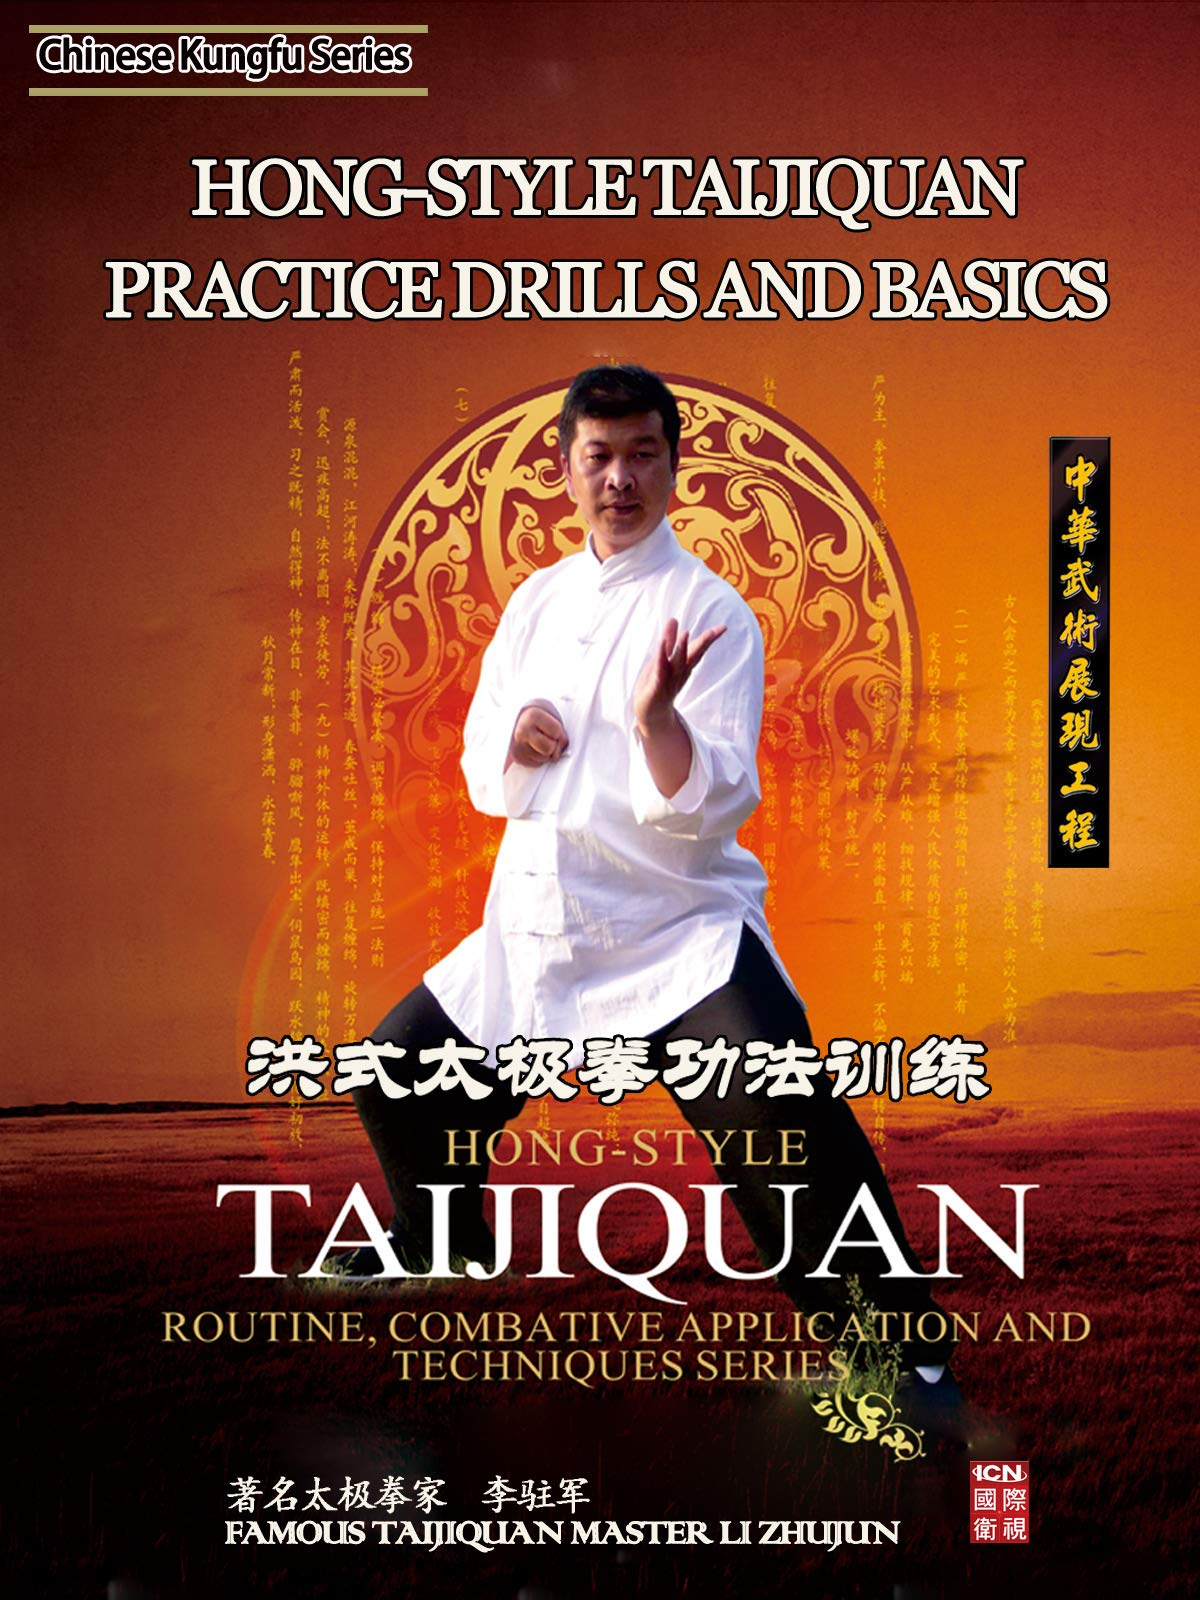 Hong-style taijiquan routine combative application and techniques series-Hong style taijiquan practice drills and basics on Amazon Prime Instant Video UK